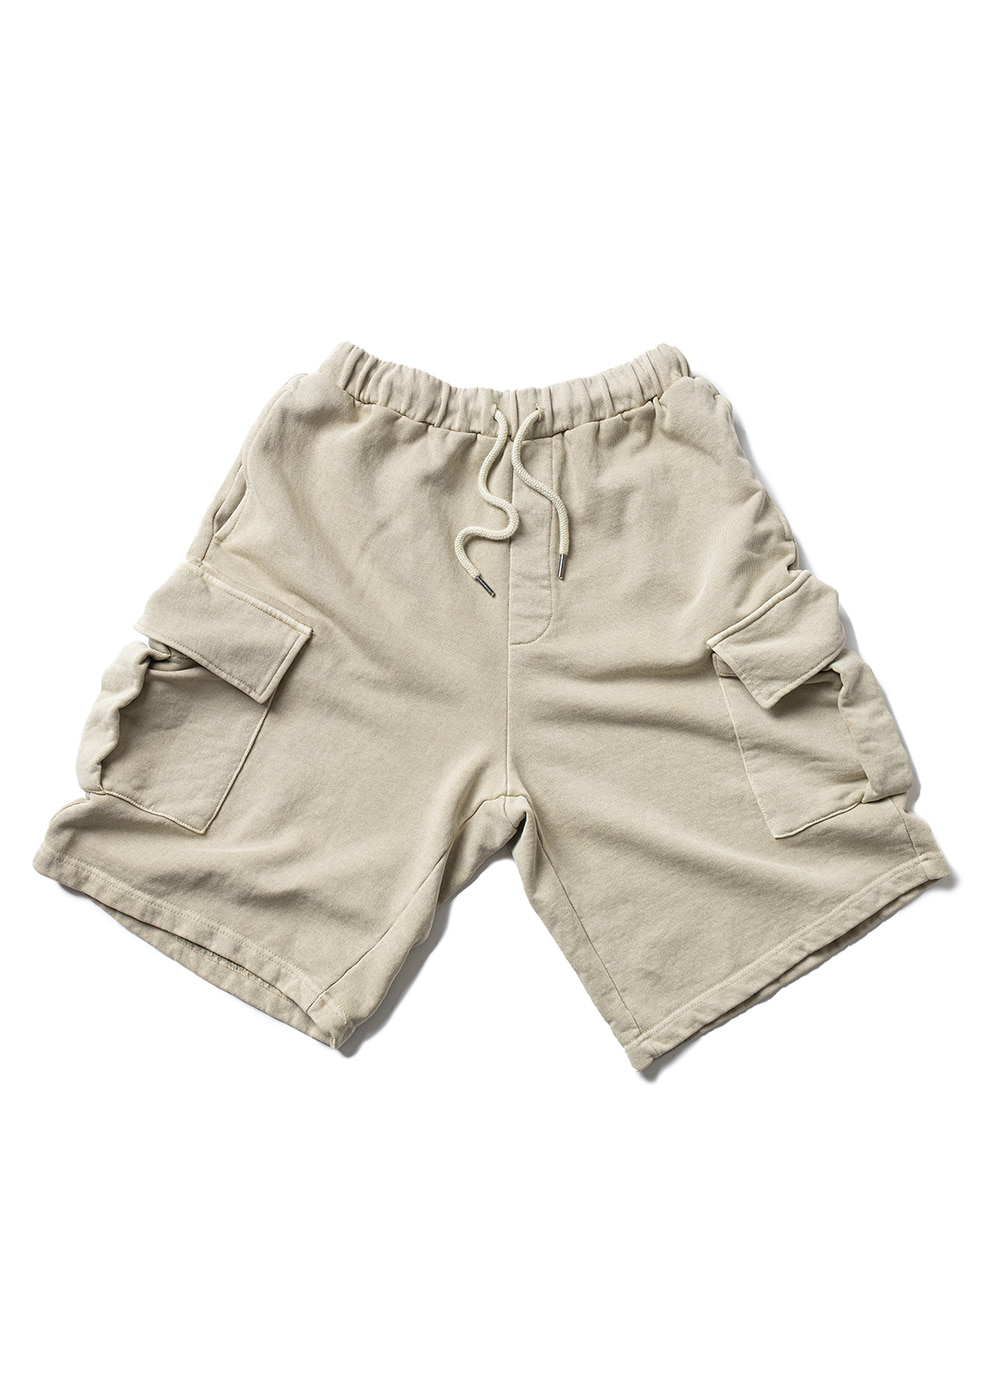 PIGMENT POCKET SHORT PANTS MUZSP001-BG